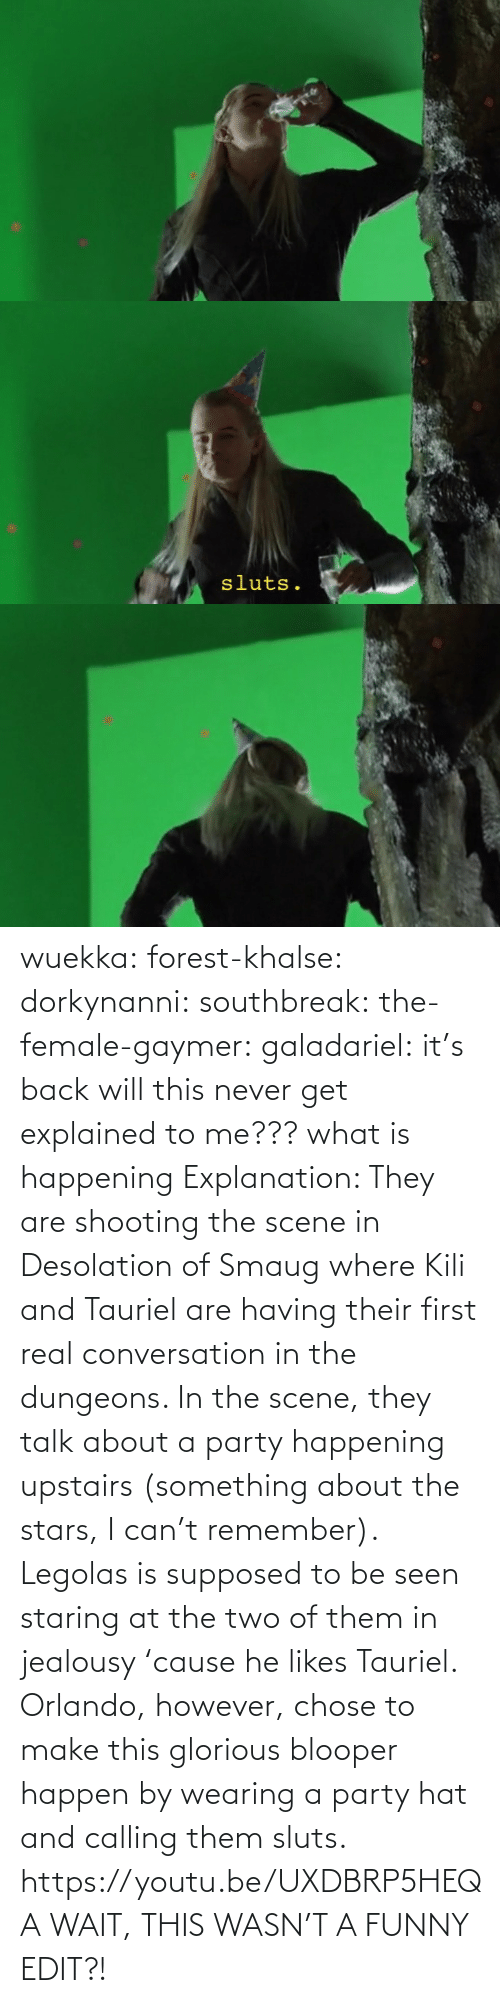 however: wuekka:  forest-khalse:   dorkynanni:  southbreak:   the-female-gaymer:   galadariel:  it's back   will this never get explained to me???    what is happening    Explanation:  They are shooting the scene in Desolation of Smaug where Kili and Tauriel are having their first real conversation in the dungeons.  In the scene, they talk about a party happening upstairs (something about the stars, I can't remember). Legolas is supposed to be seen staring at the two of them in jealousy 'cause he likes Tauriel.  Orlando, however, chose to make this glorious blooper happen by wearing a party hat and calling them sluts.    https://youtu.be/UXDBRP5HEQA    WAIT, THIS WASN'T A FUNNY EDIT?!